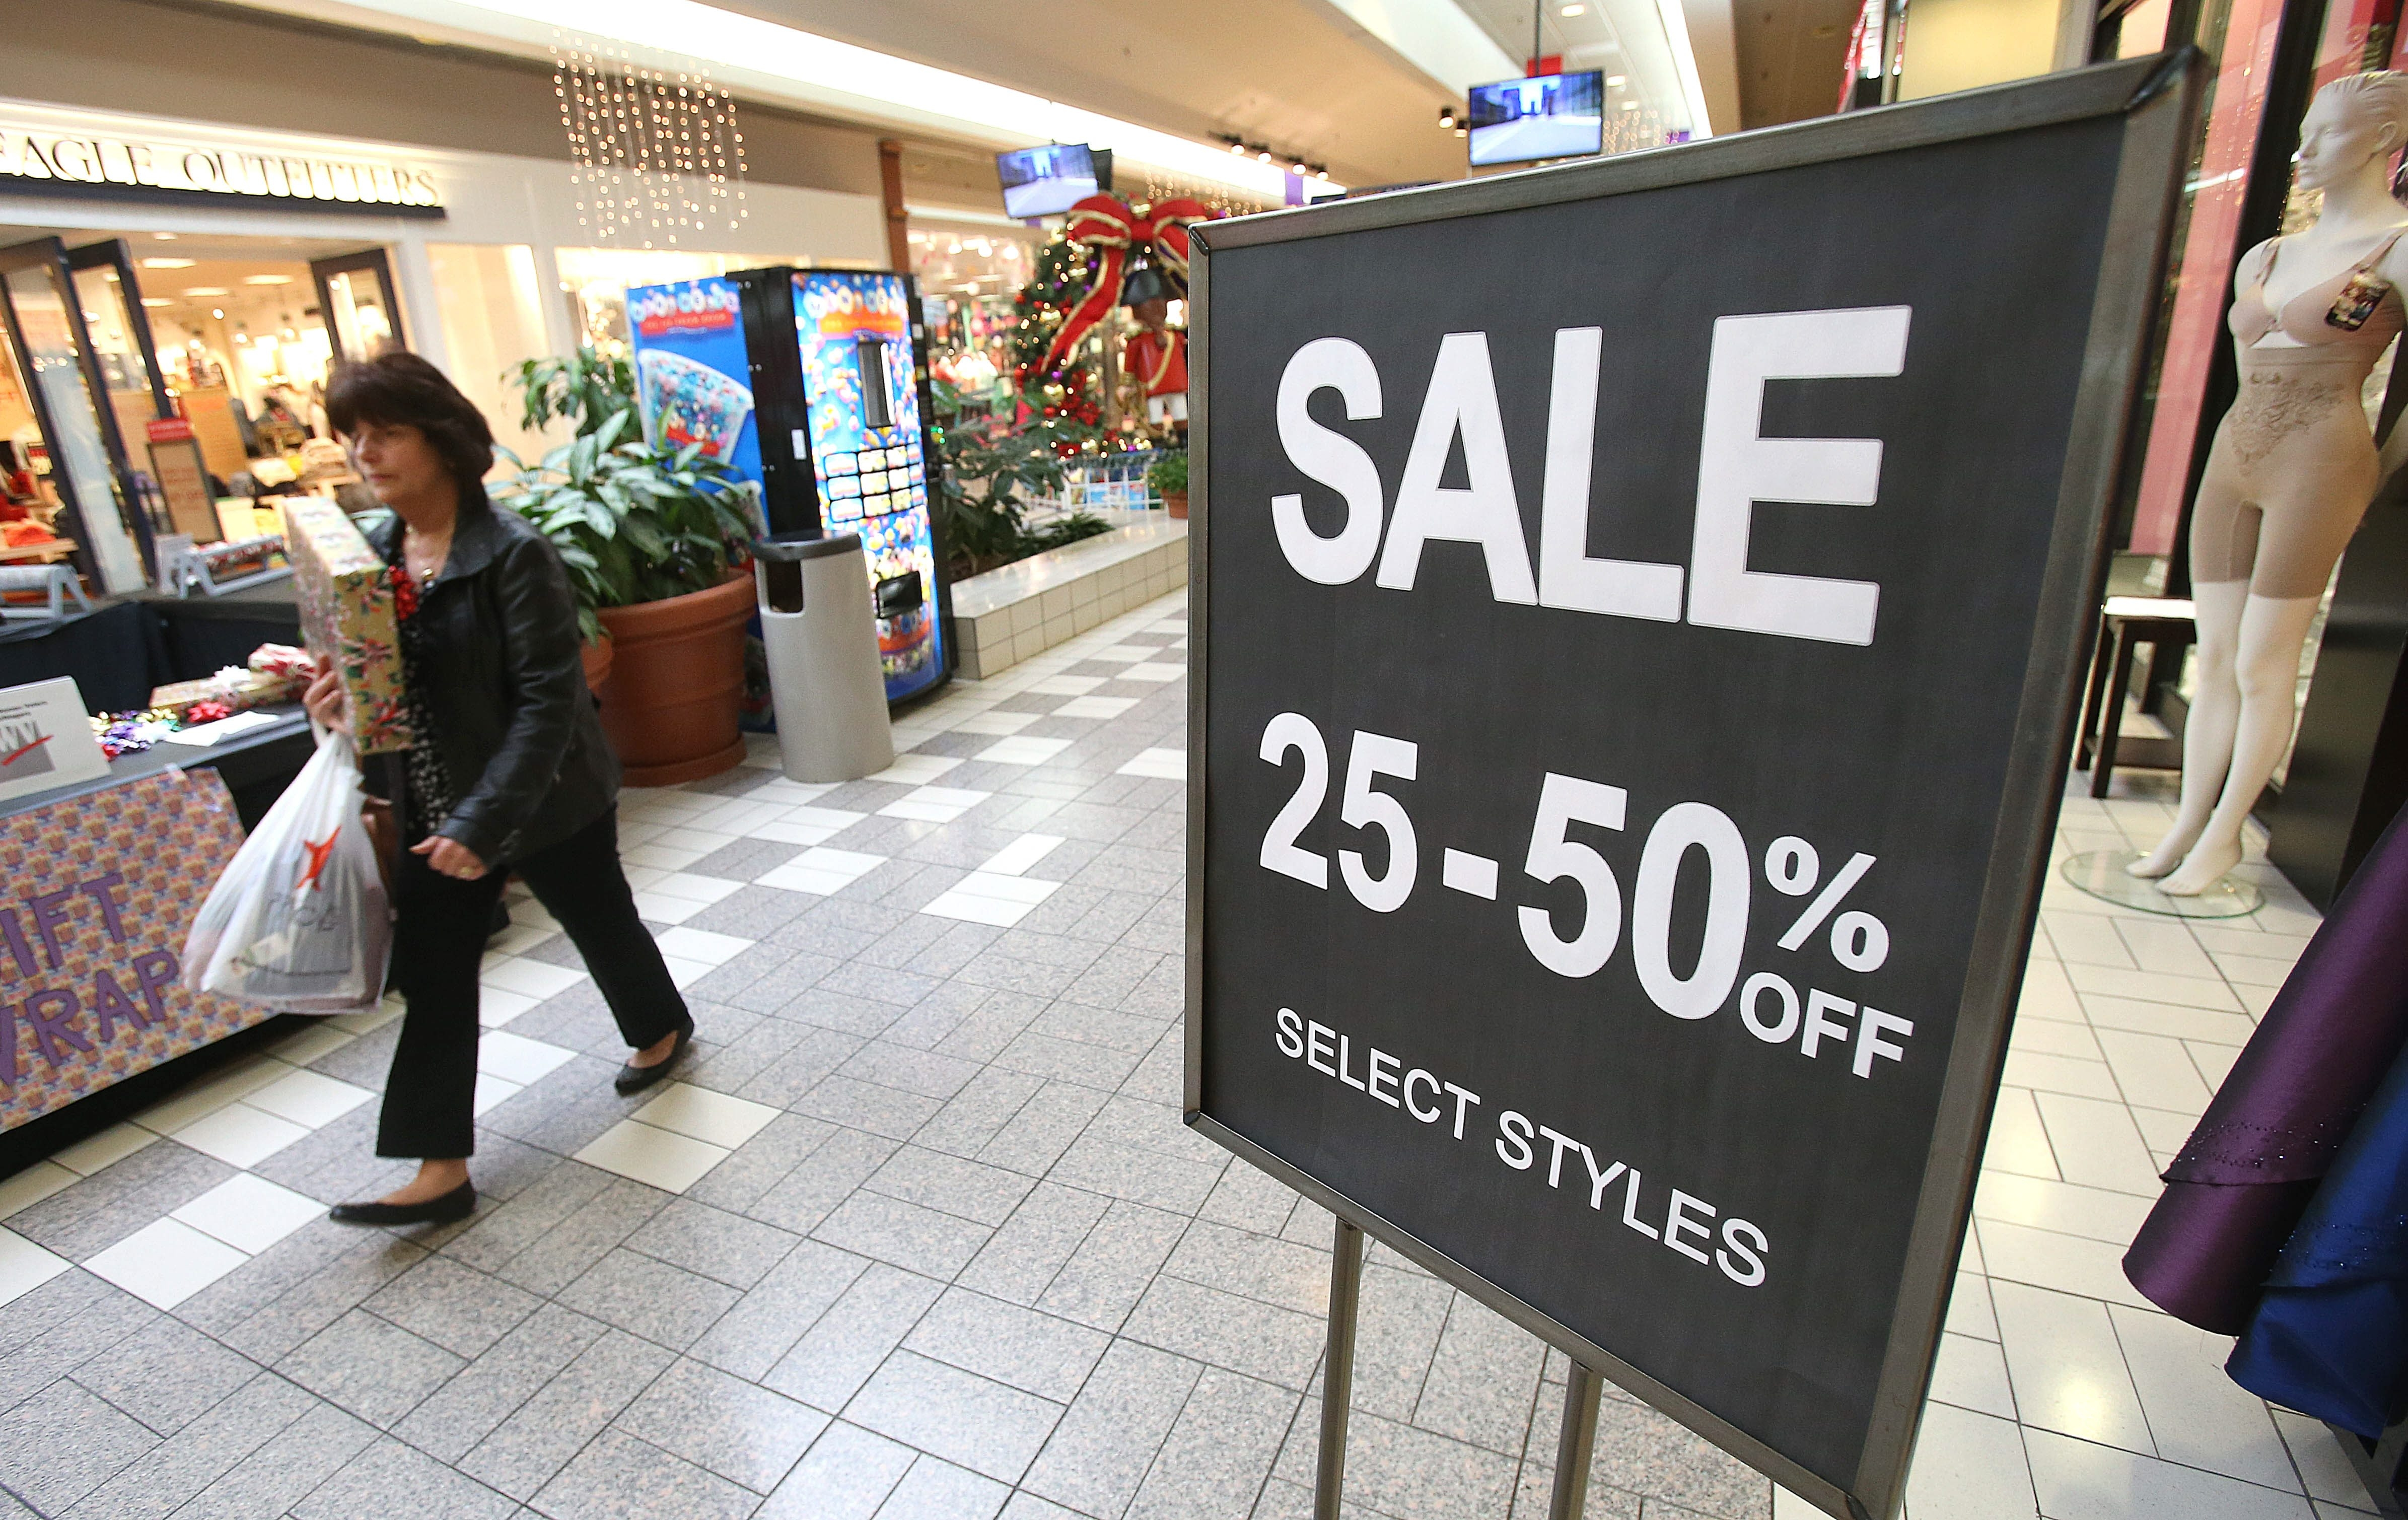 To make the most of your holiday shopping, make a list and stick to it. And compare prices.